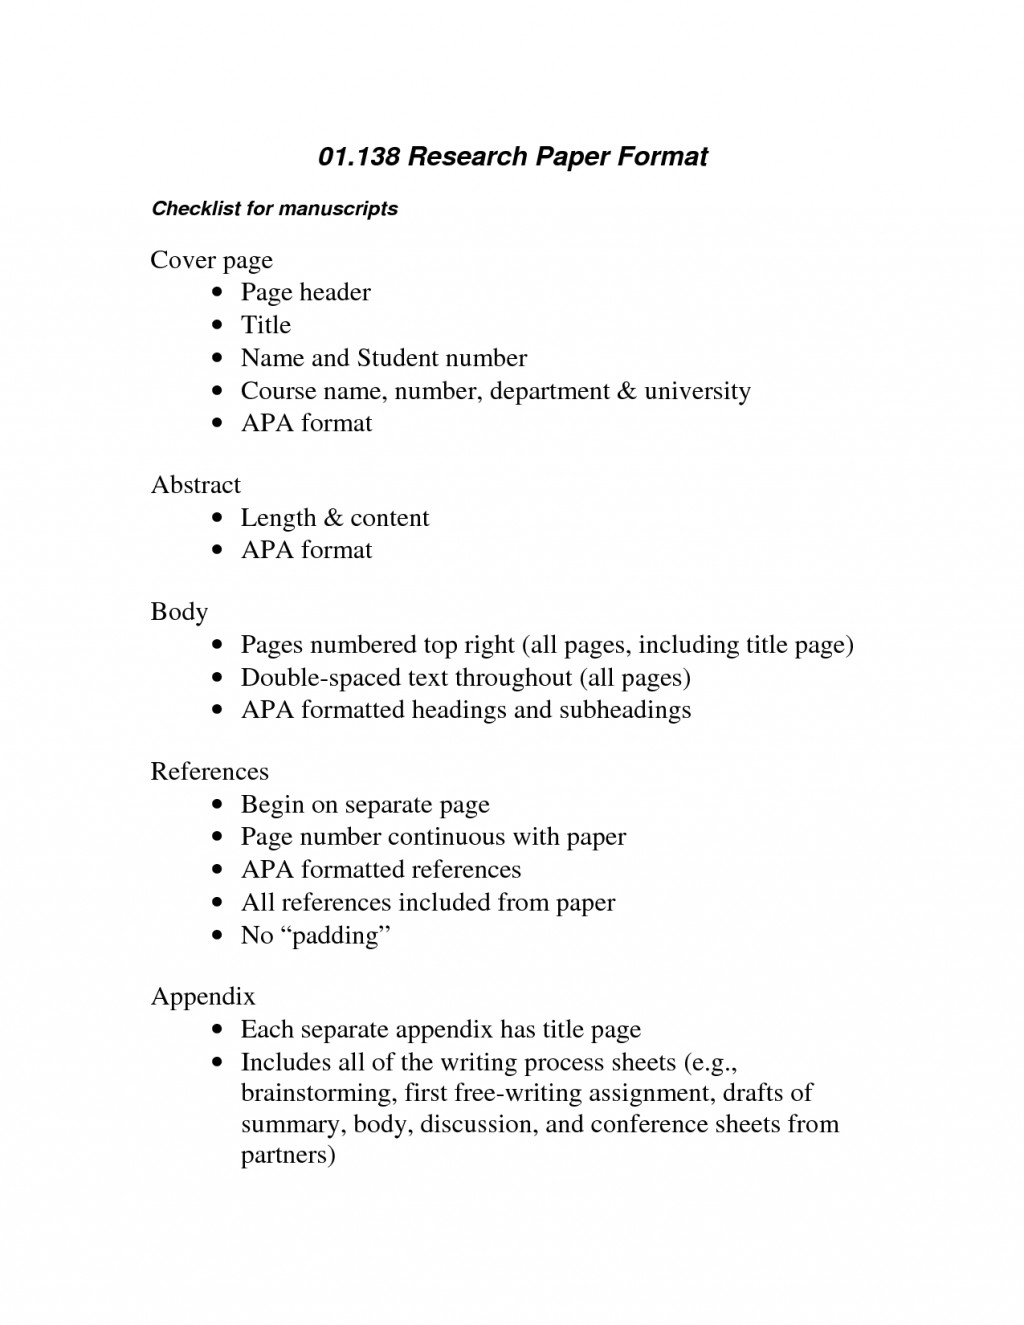 008 Research Paper Appendix In Pdf Incredible Example Of Appendices Large